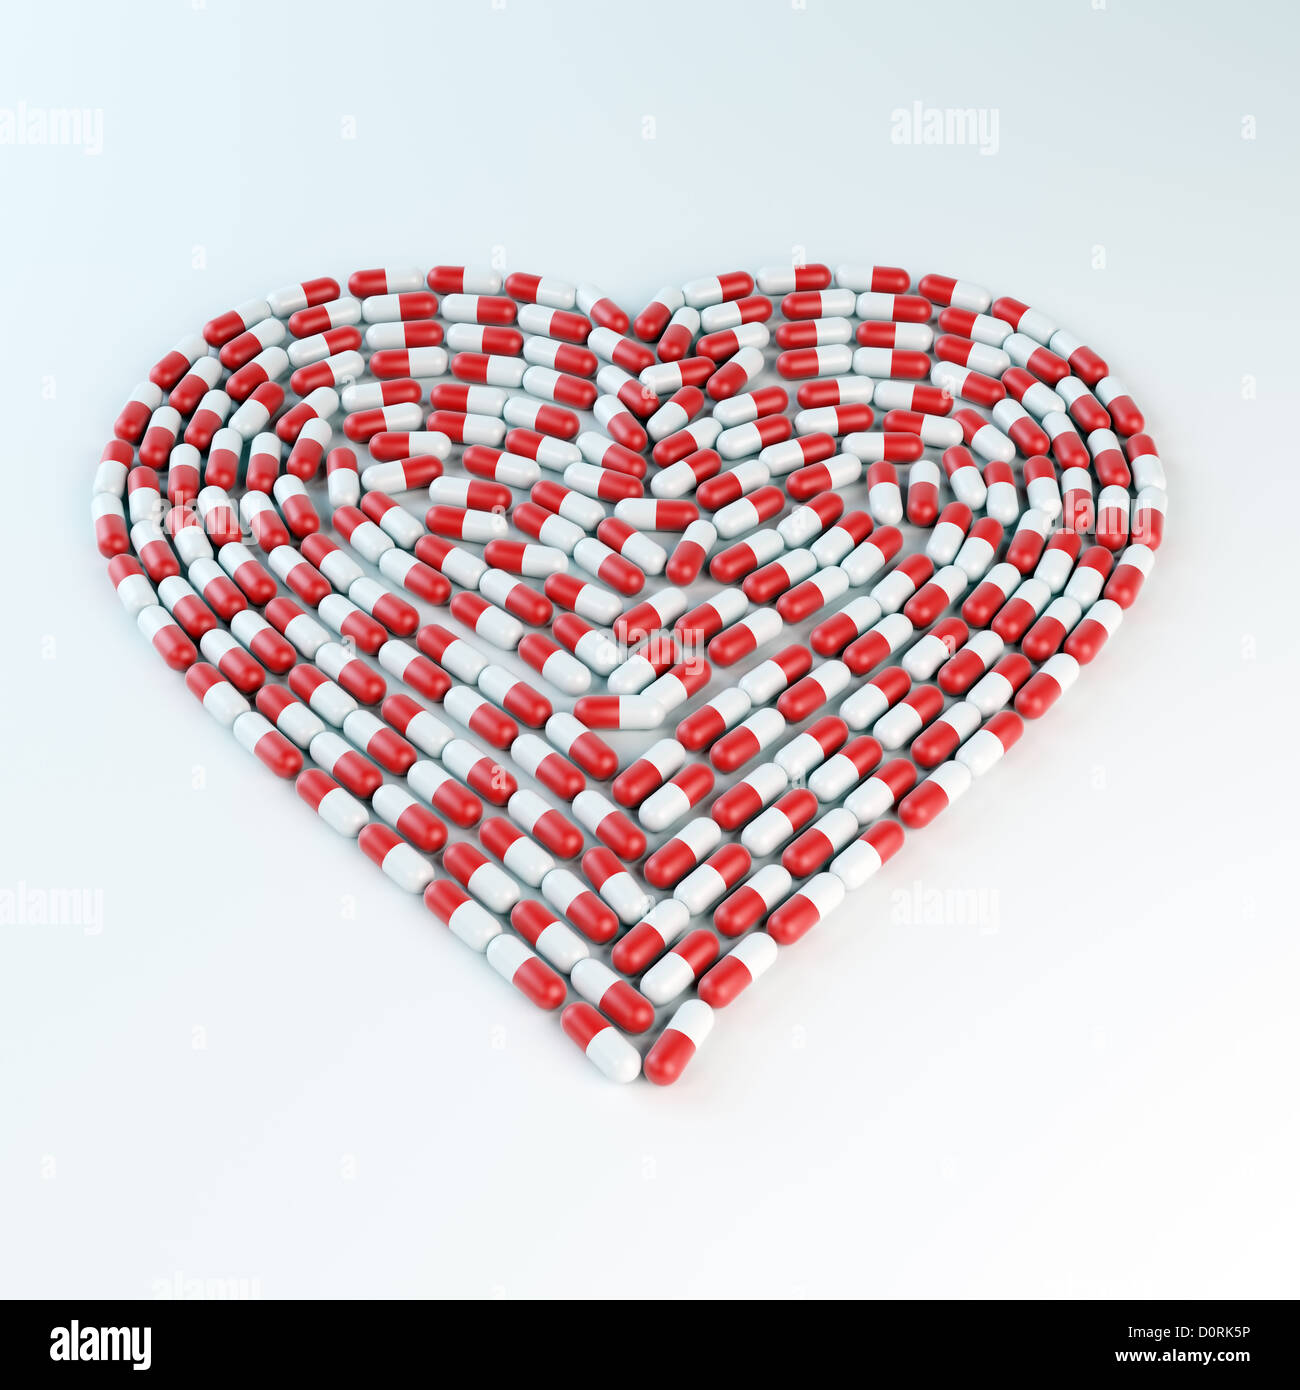 Red and white capsules forming a heart shap Stock Photo